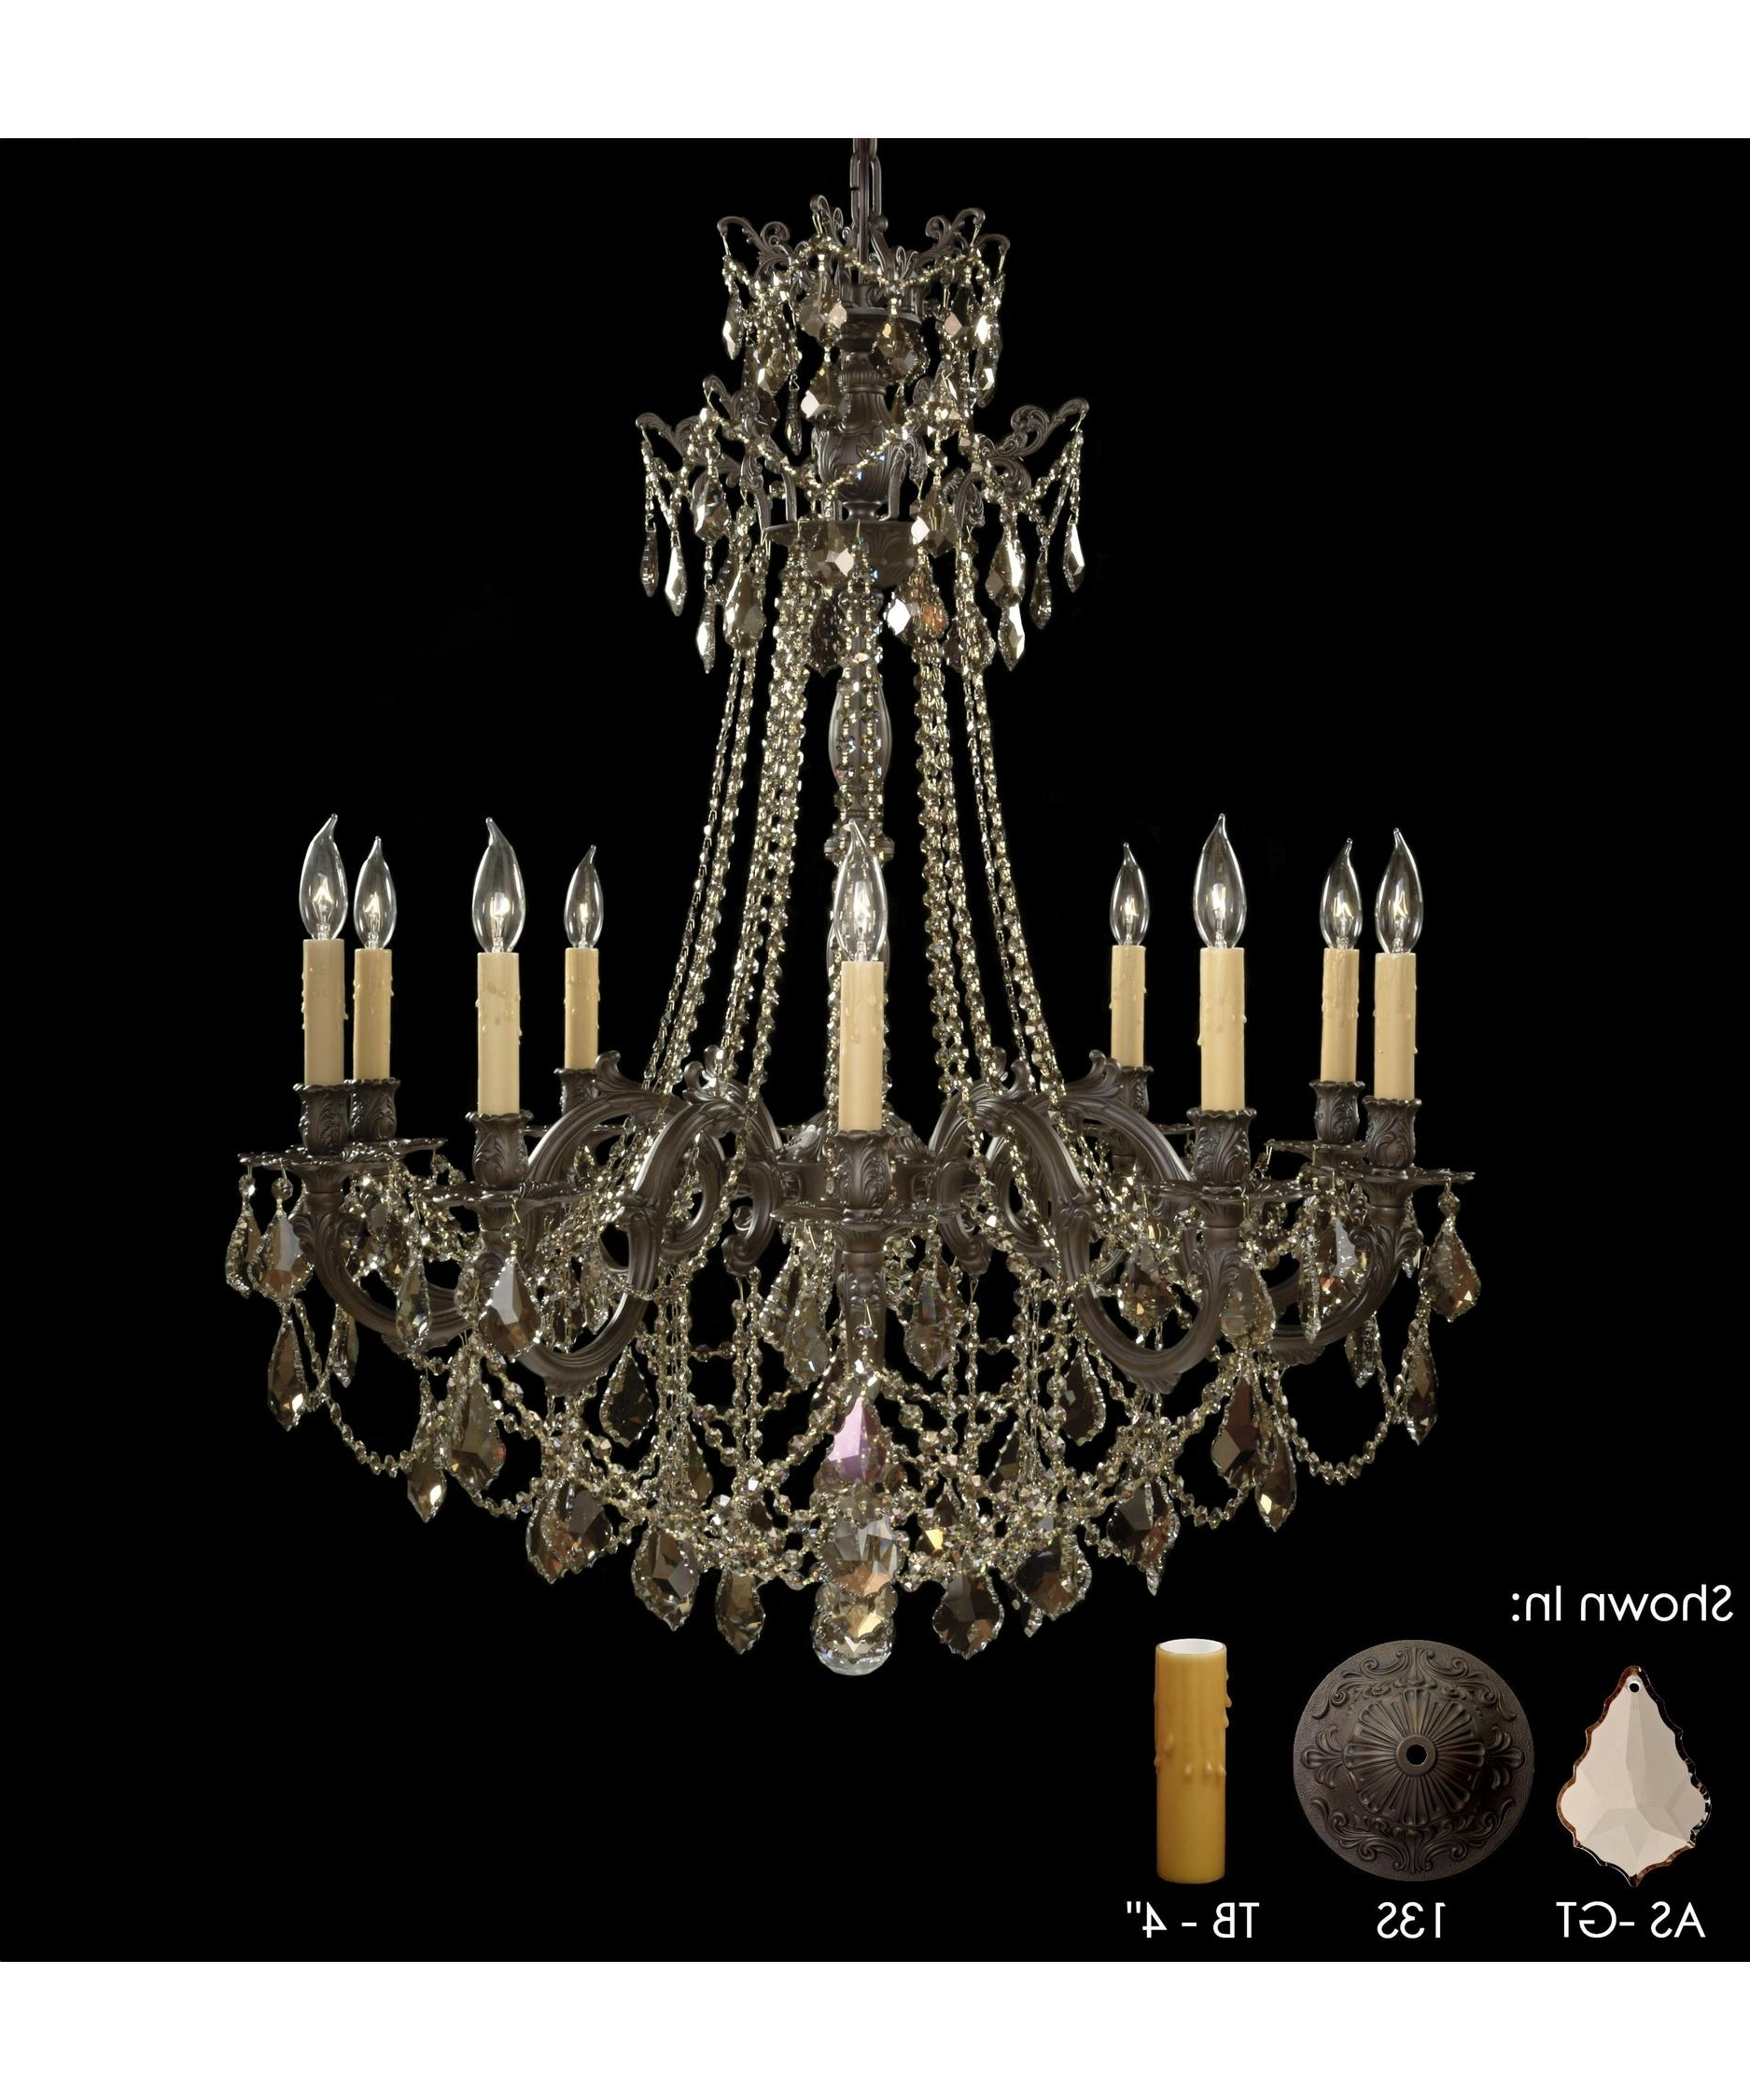 American Brass And Crystal Ch9258 Biella 36 Inch Wide 10 Light With Regard To Most Recent Brass And Crystal Chandelier (View 1 of 20)